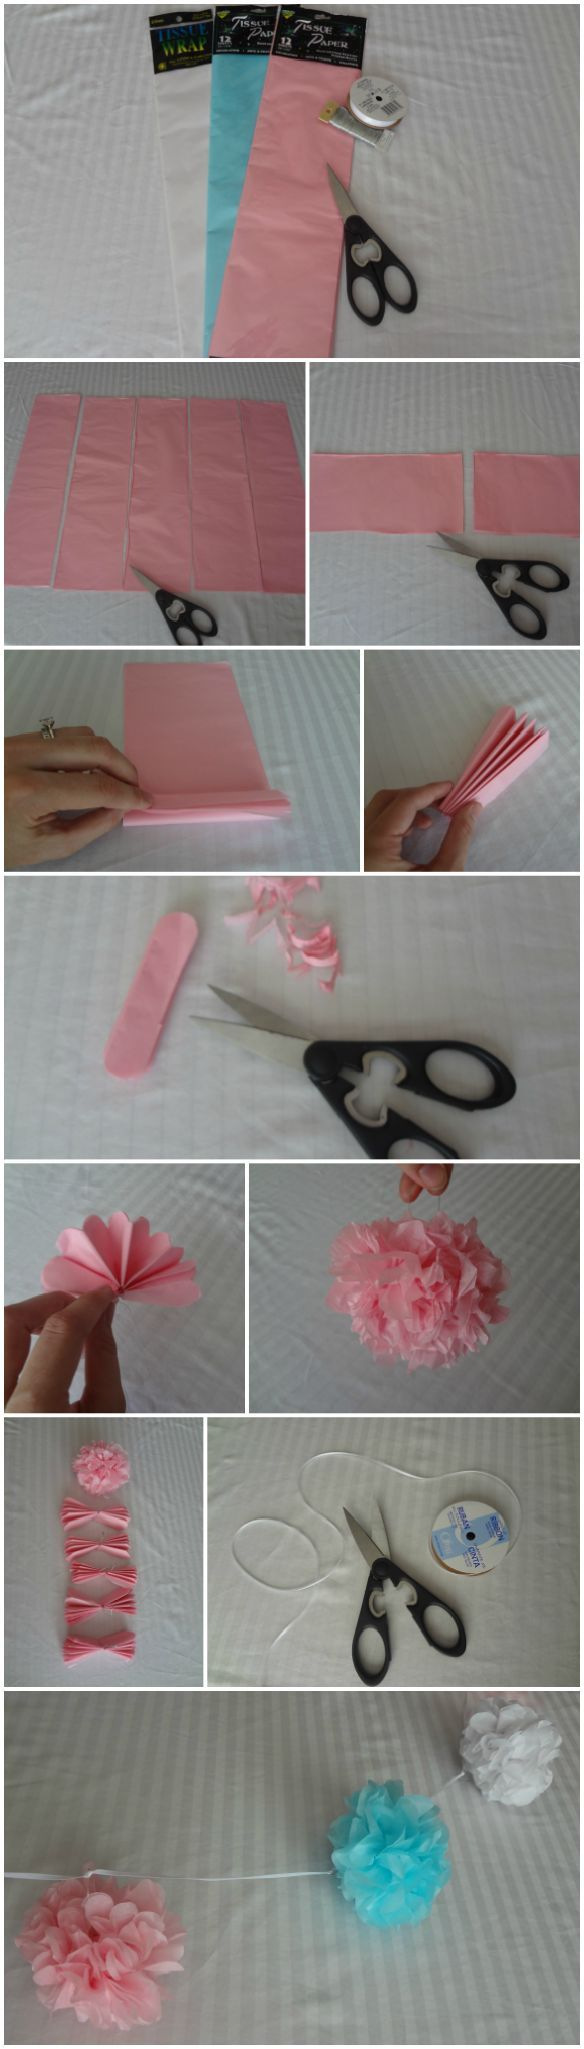 How to make a tissue pom pom galand via One Stylish Party